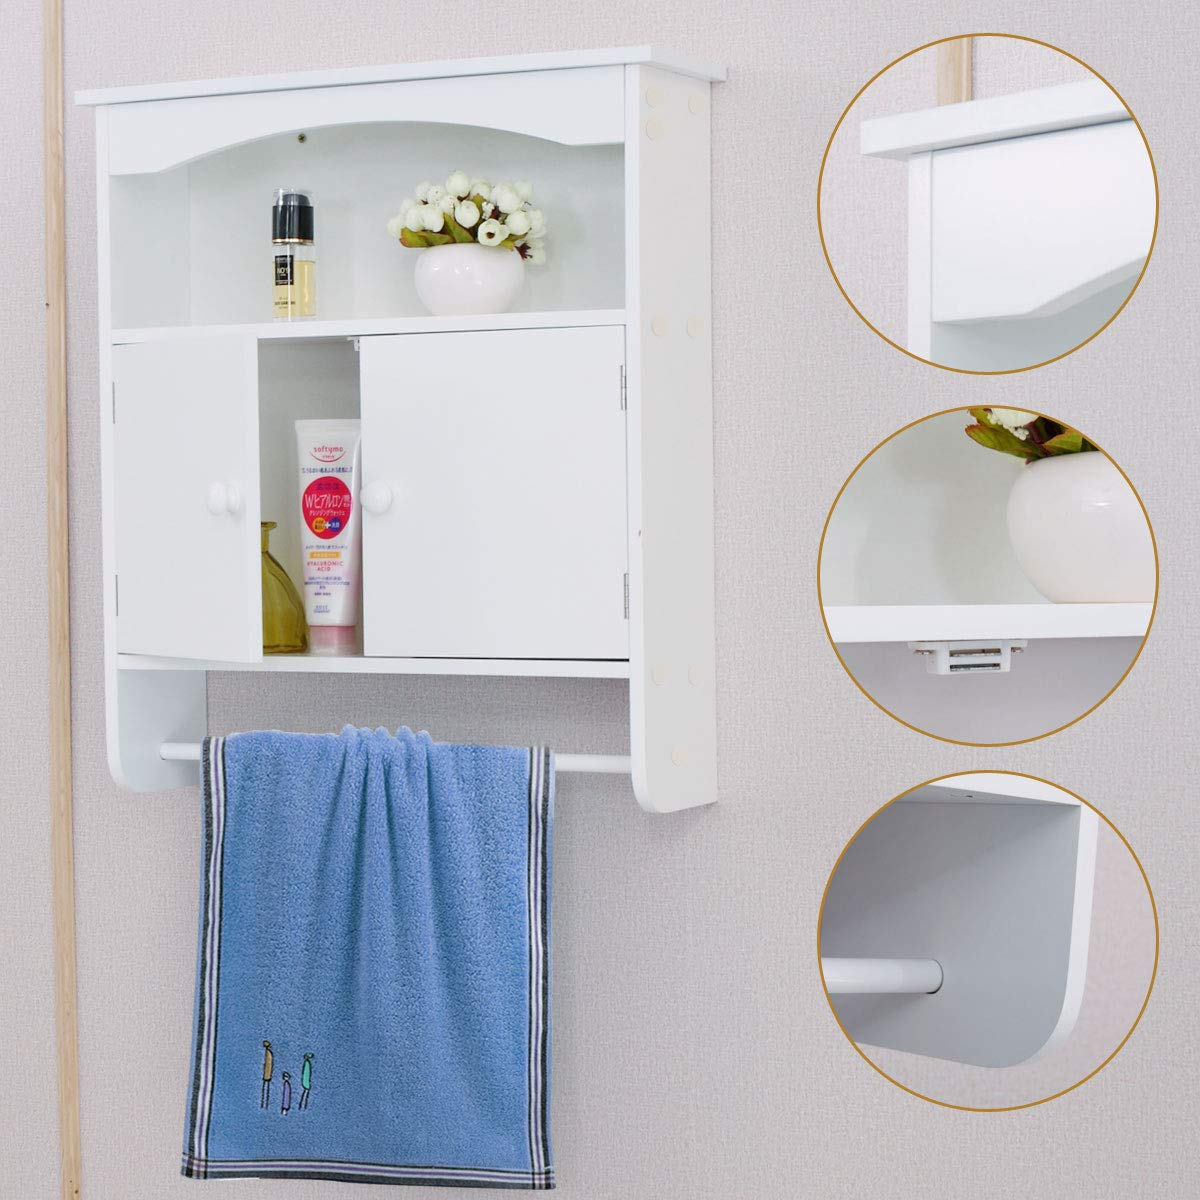 Sandinrayli Wall Mounted Bathroom Storage Cabinet Towel Shelf Toilet Medicine Organizer White Buy Online In India At Desertcart In Productid 64166492